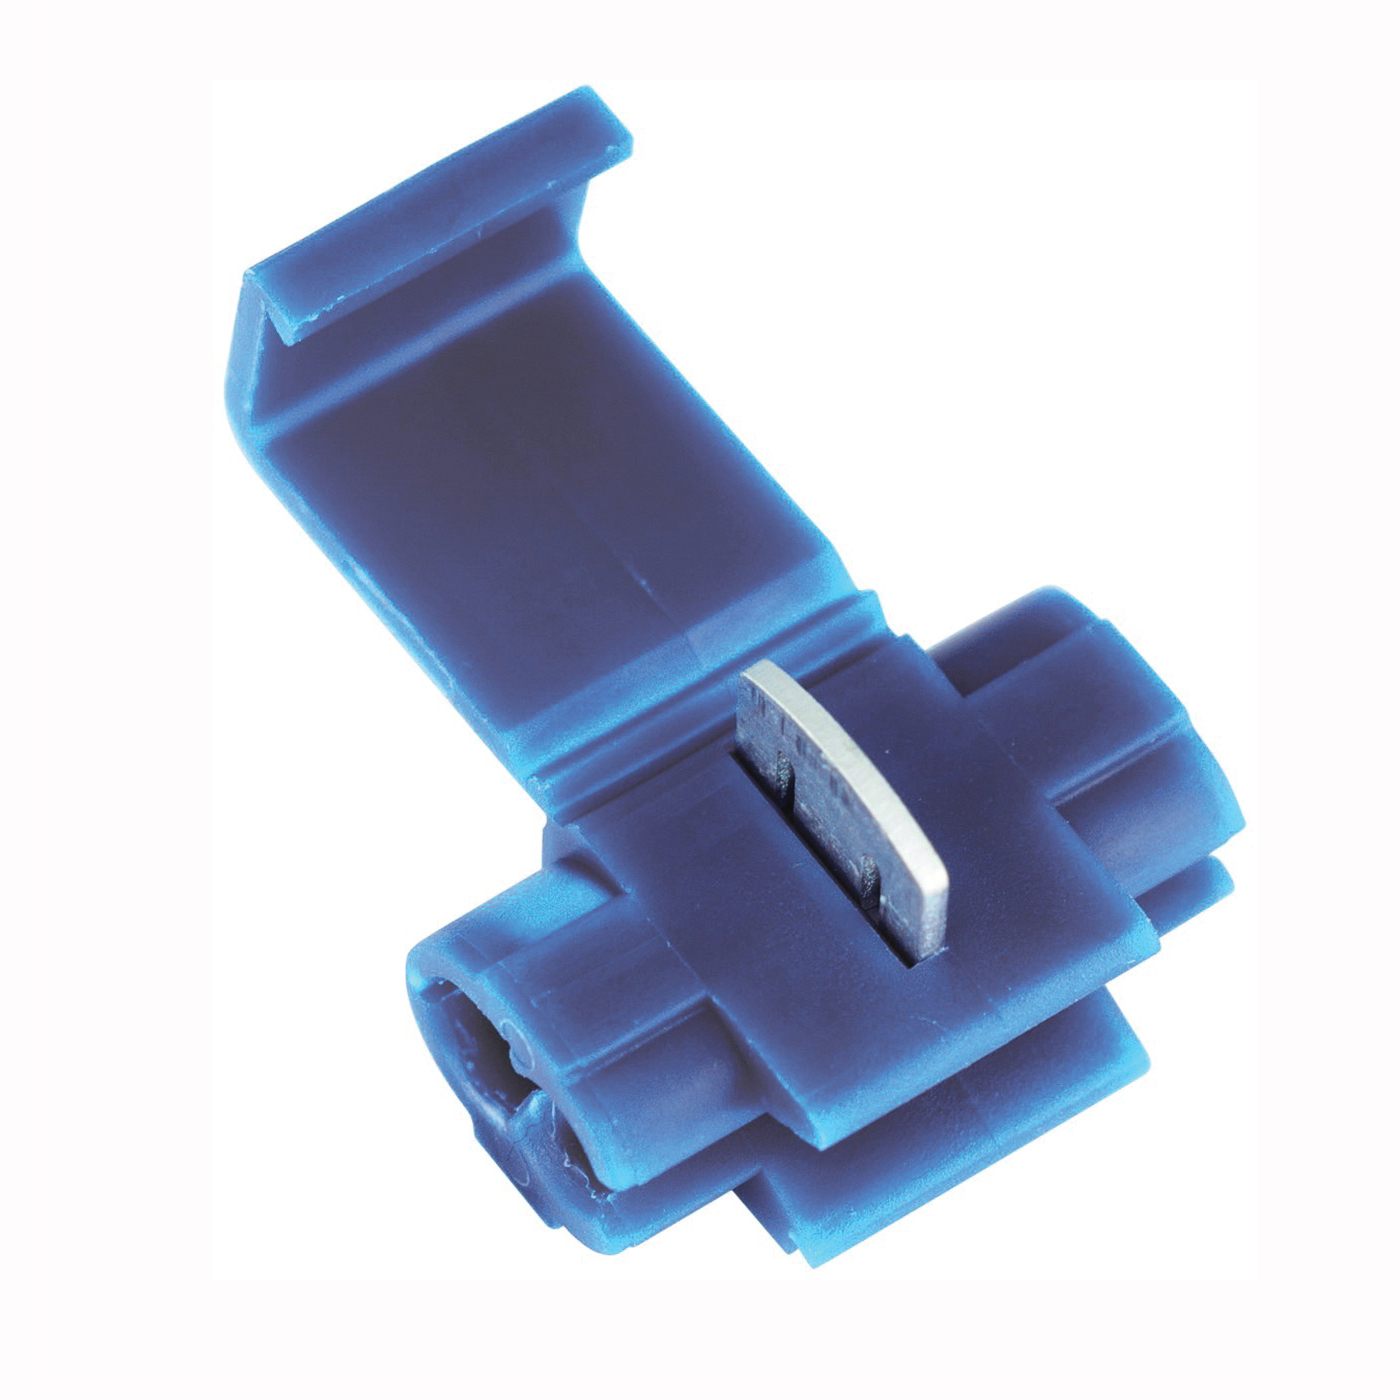 Picture of GB 10-100 Tap Splice, 16 to 14 AWG Wire, Blue